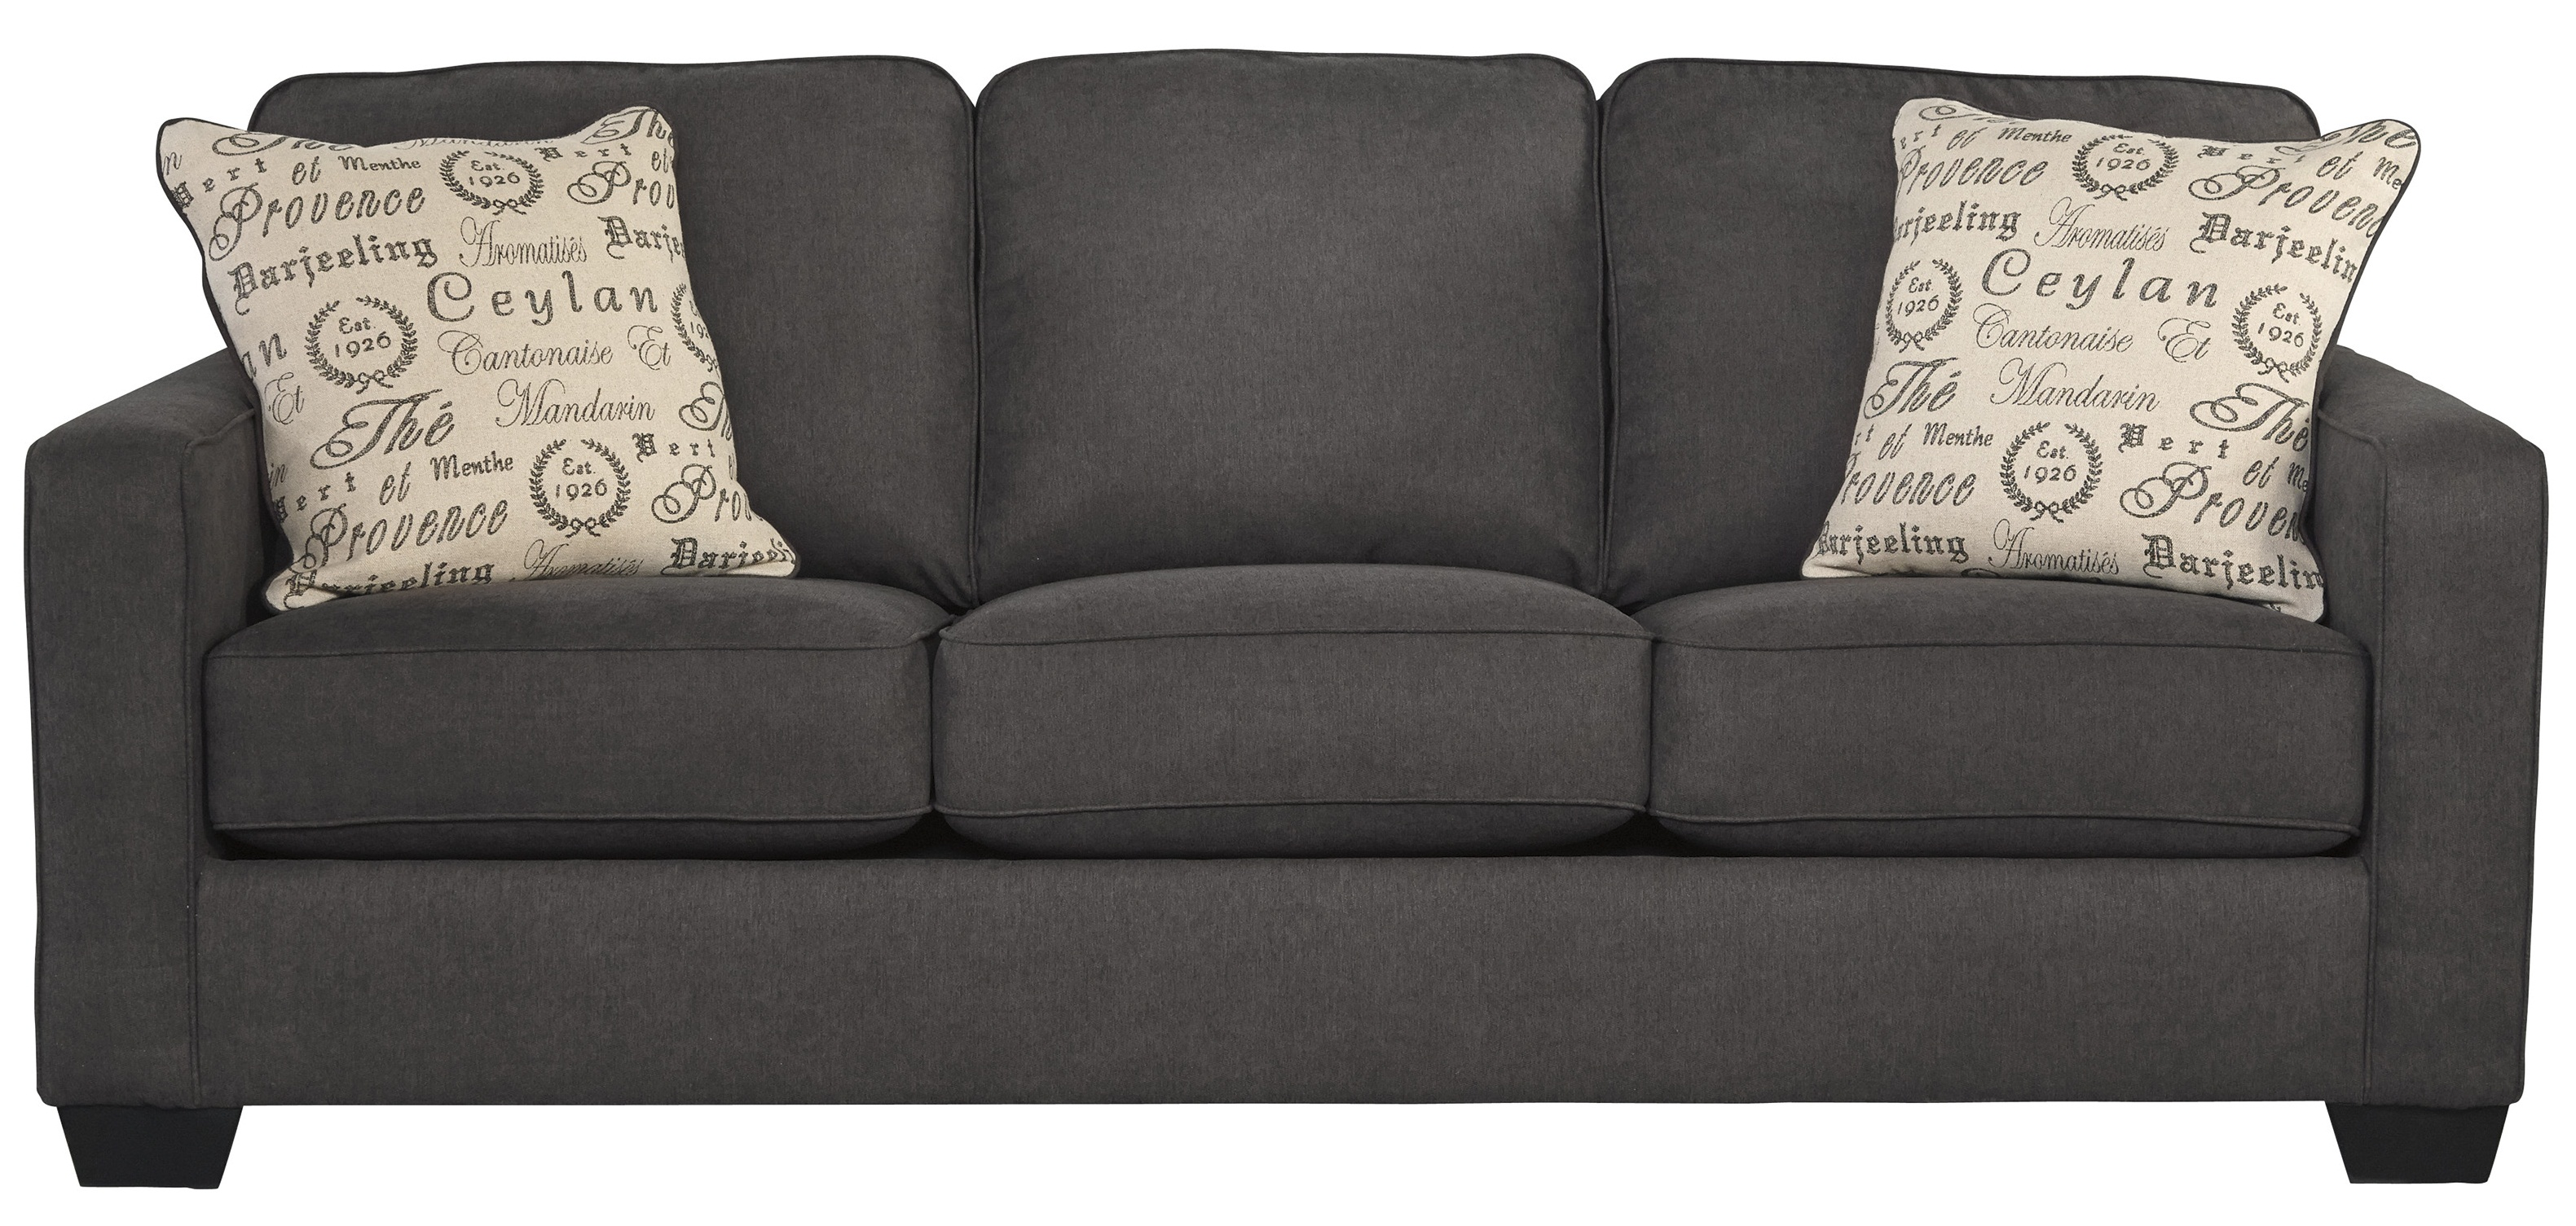 Baby proof queen bed - Buying A New Sofa Opt For Dark Colors And Soft Materials